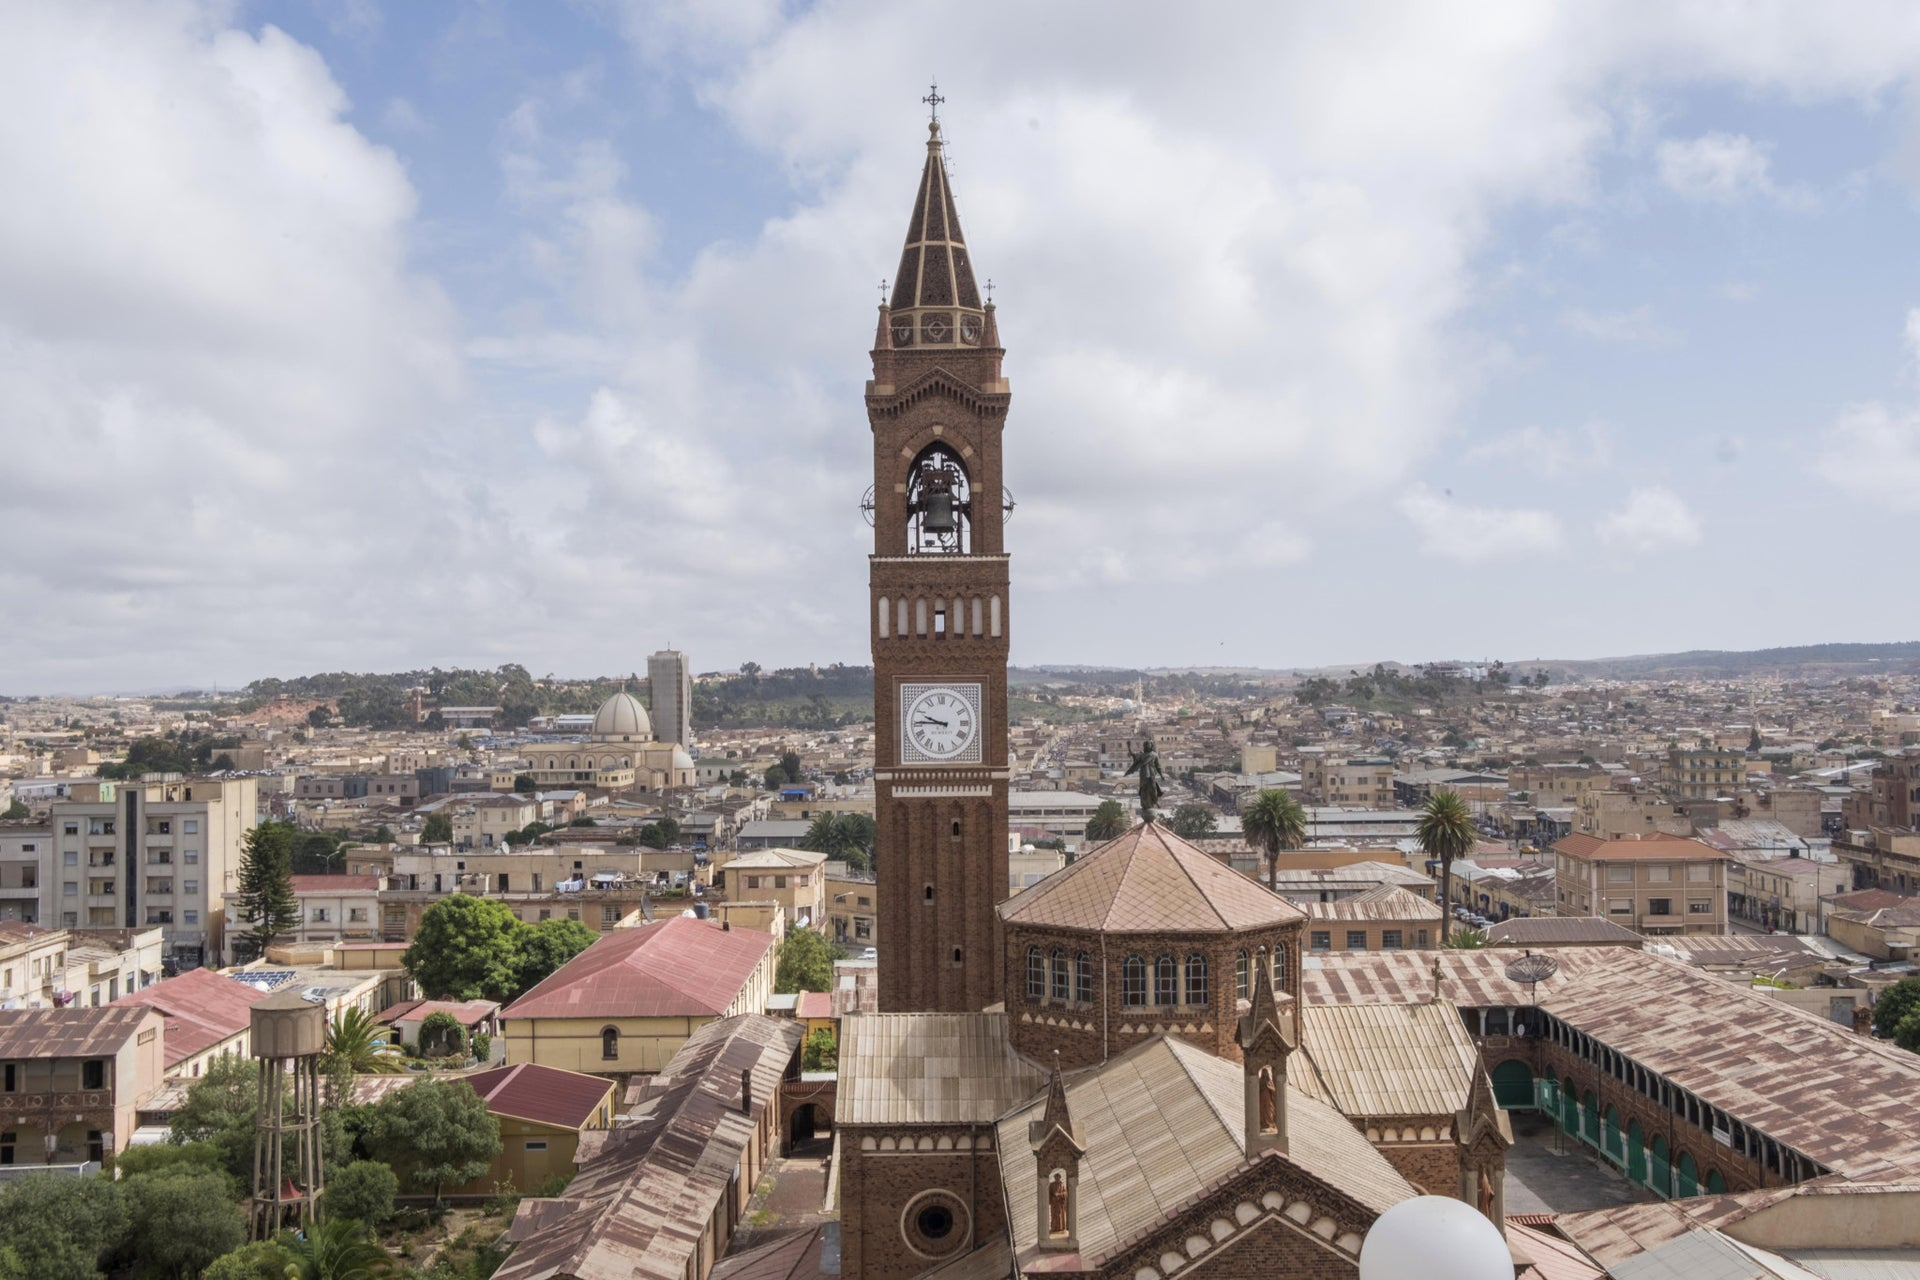 An aerial picture taken on July 21, 2018 shows a view of the Eritrean capital, Asmara with the St. Mary Cathedral tower.